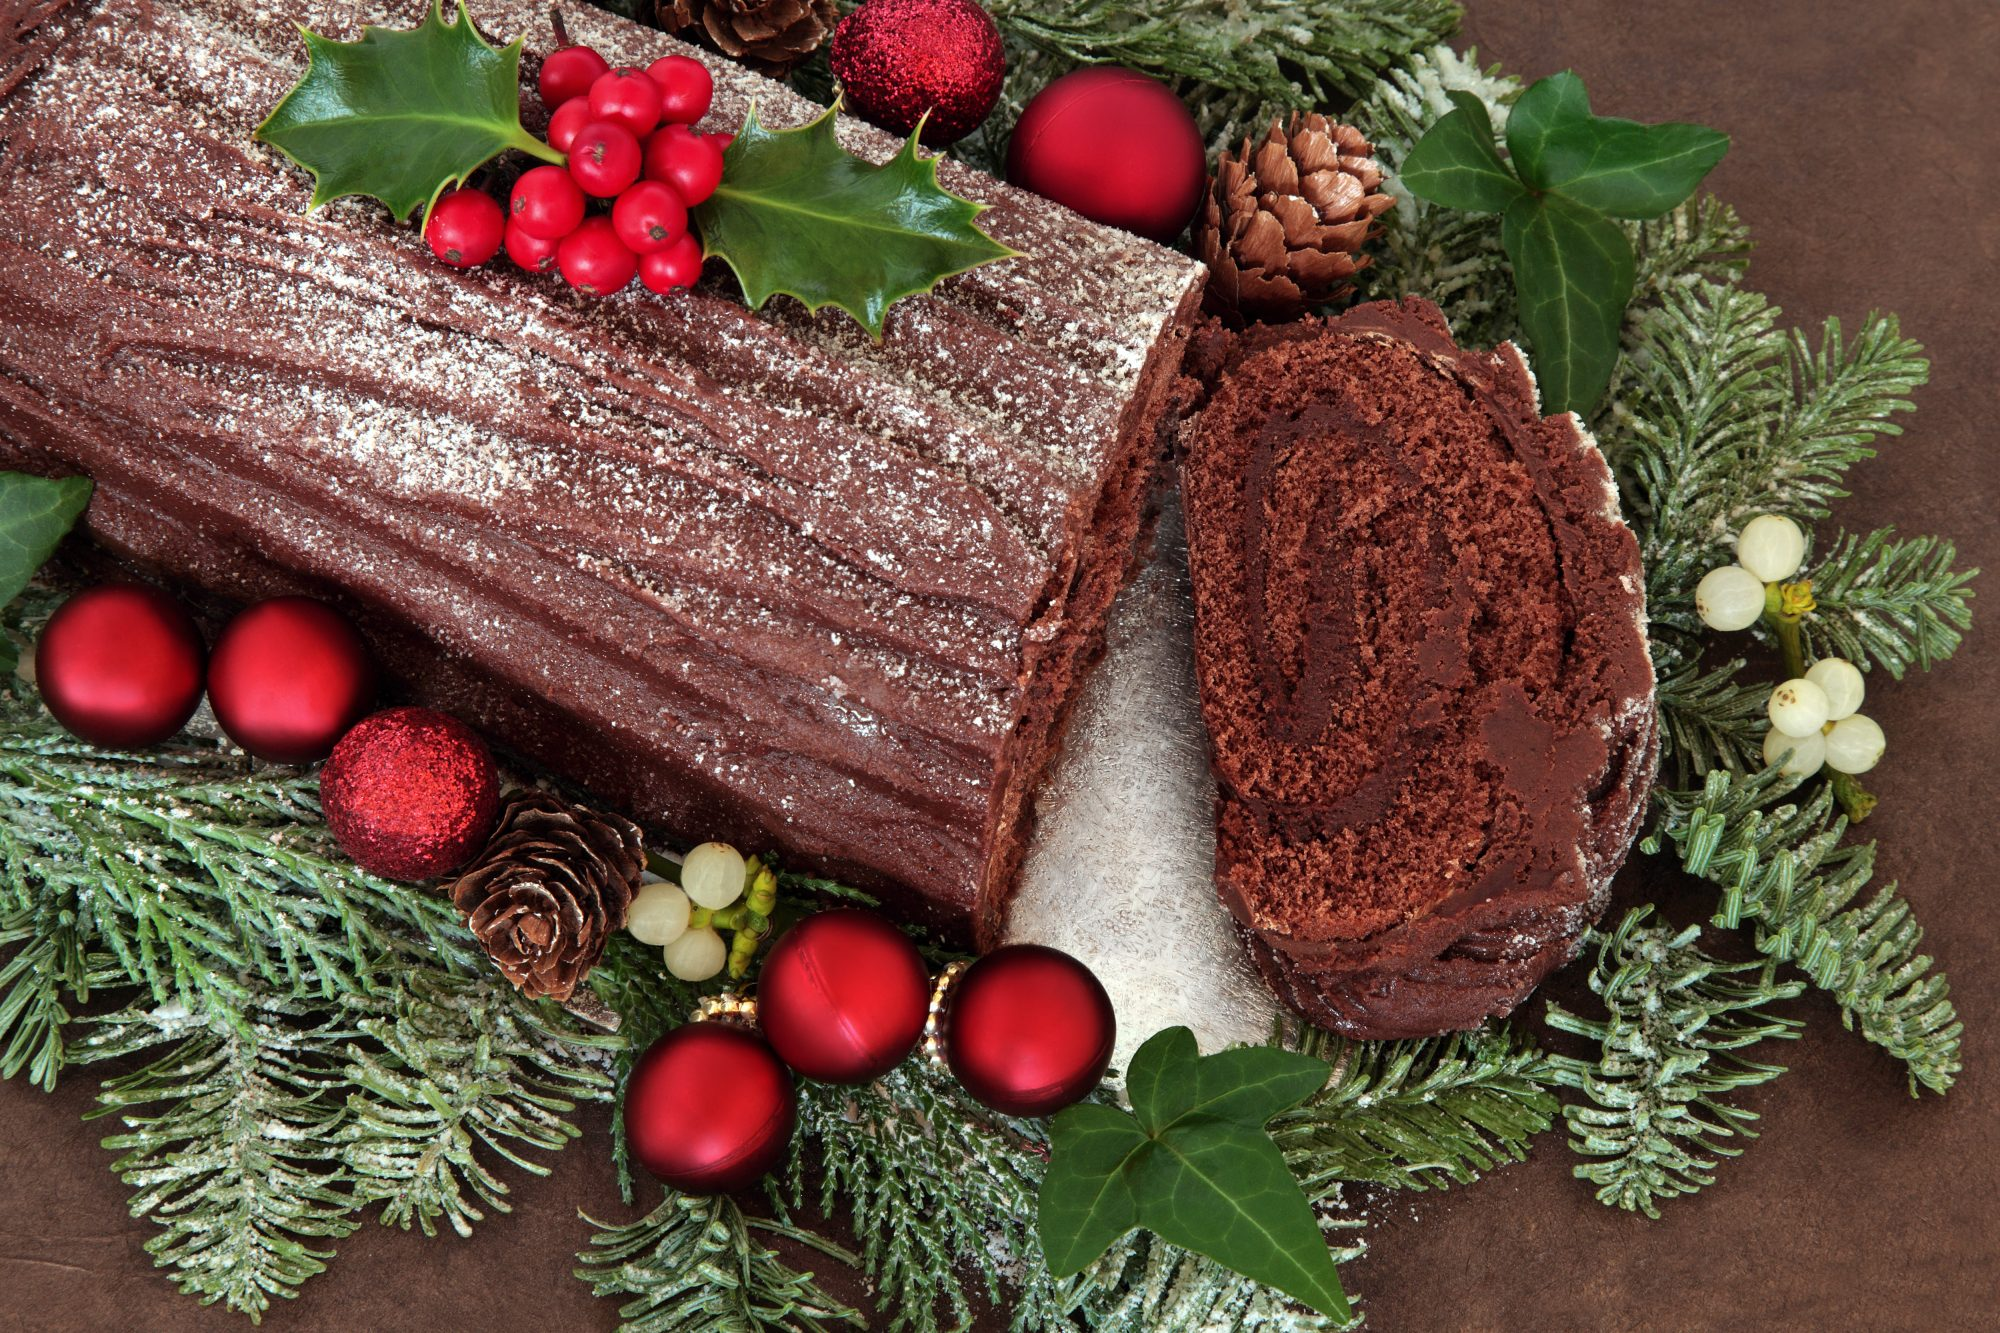 Yule Log 2 Getty 11/14/19